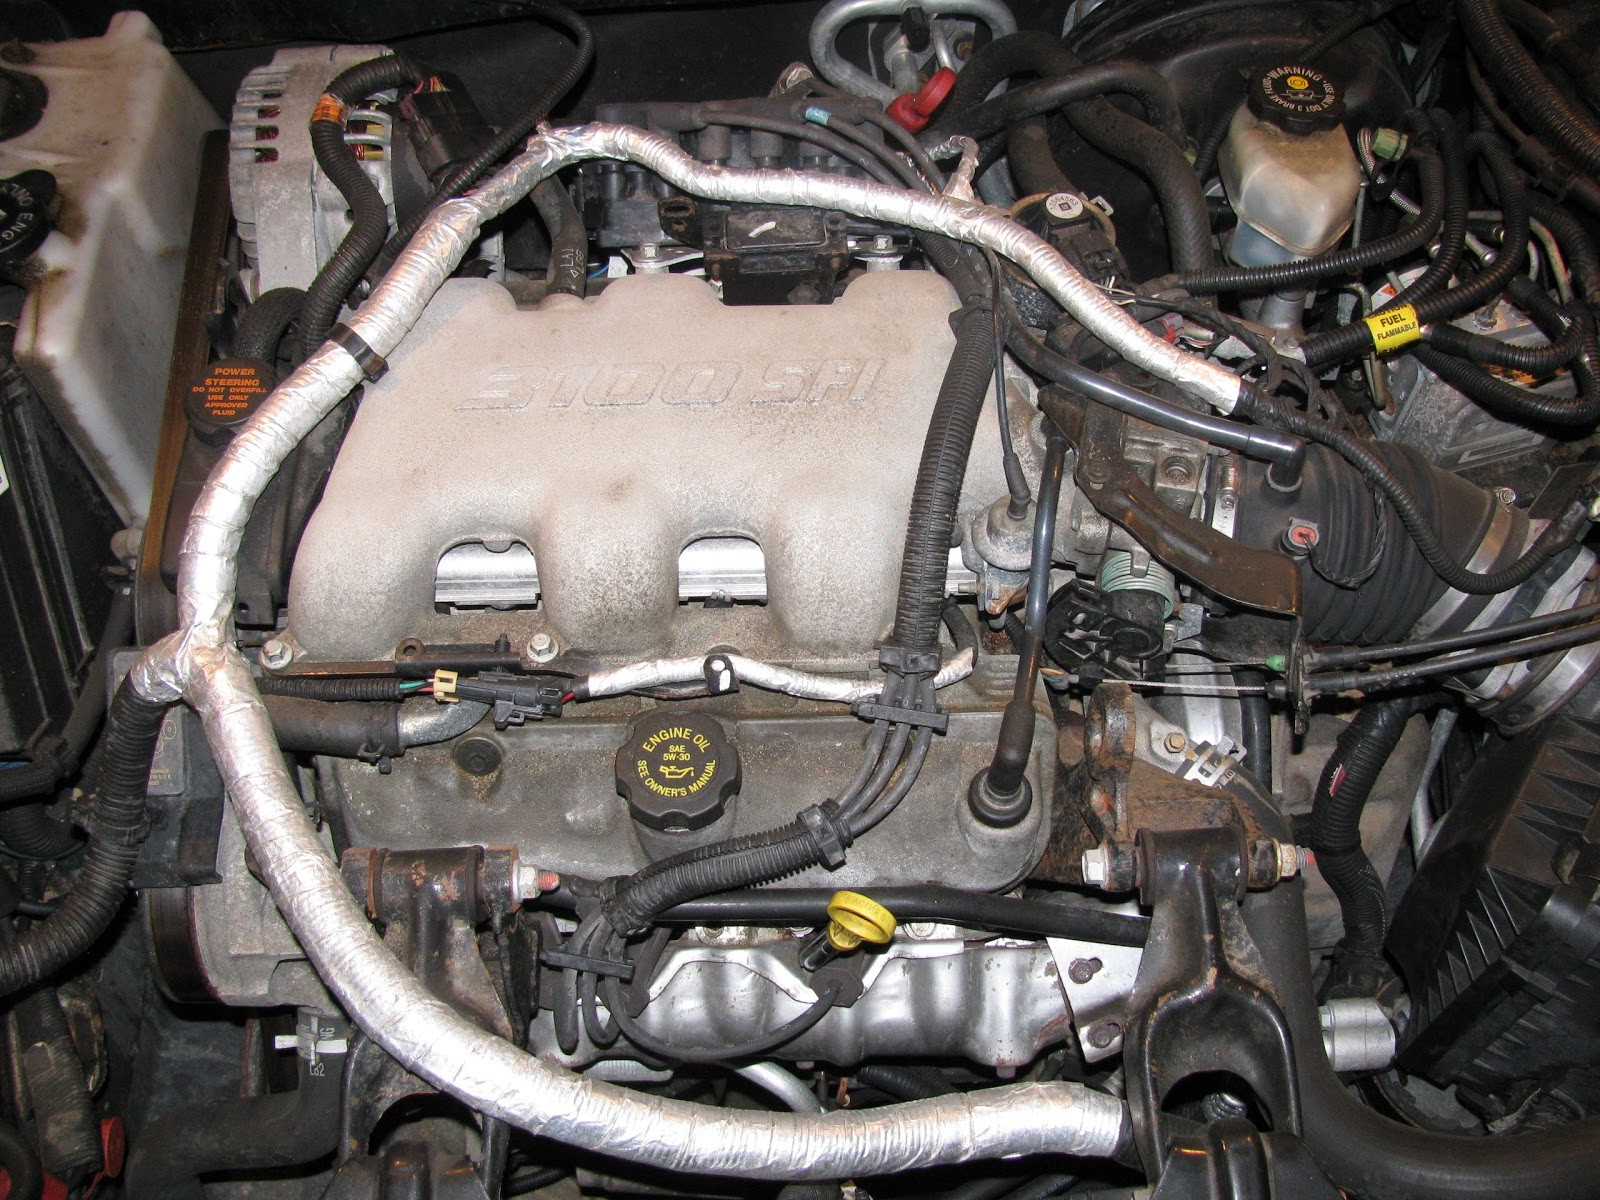 Gm 3 1 Engine Diagram Trusted Wiring Diagrams 2001 Gmc 6 0 4l V6 Diy Enthusiasts U2022 Rh Broadwaycomputers Us Chevrolet 34 98 Chevy Lumina